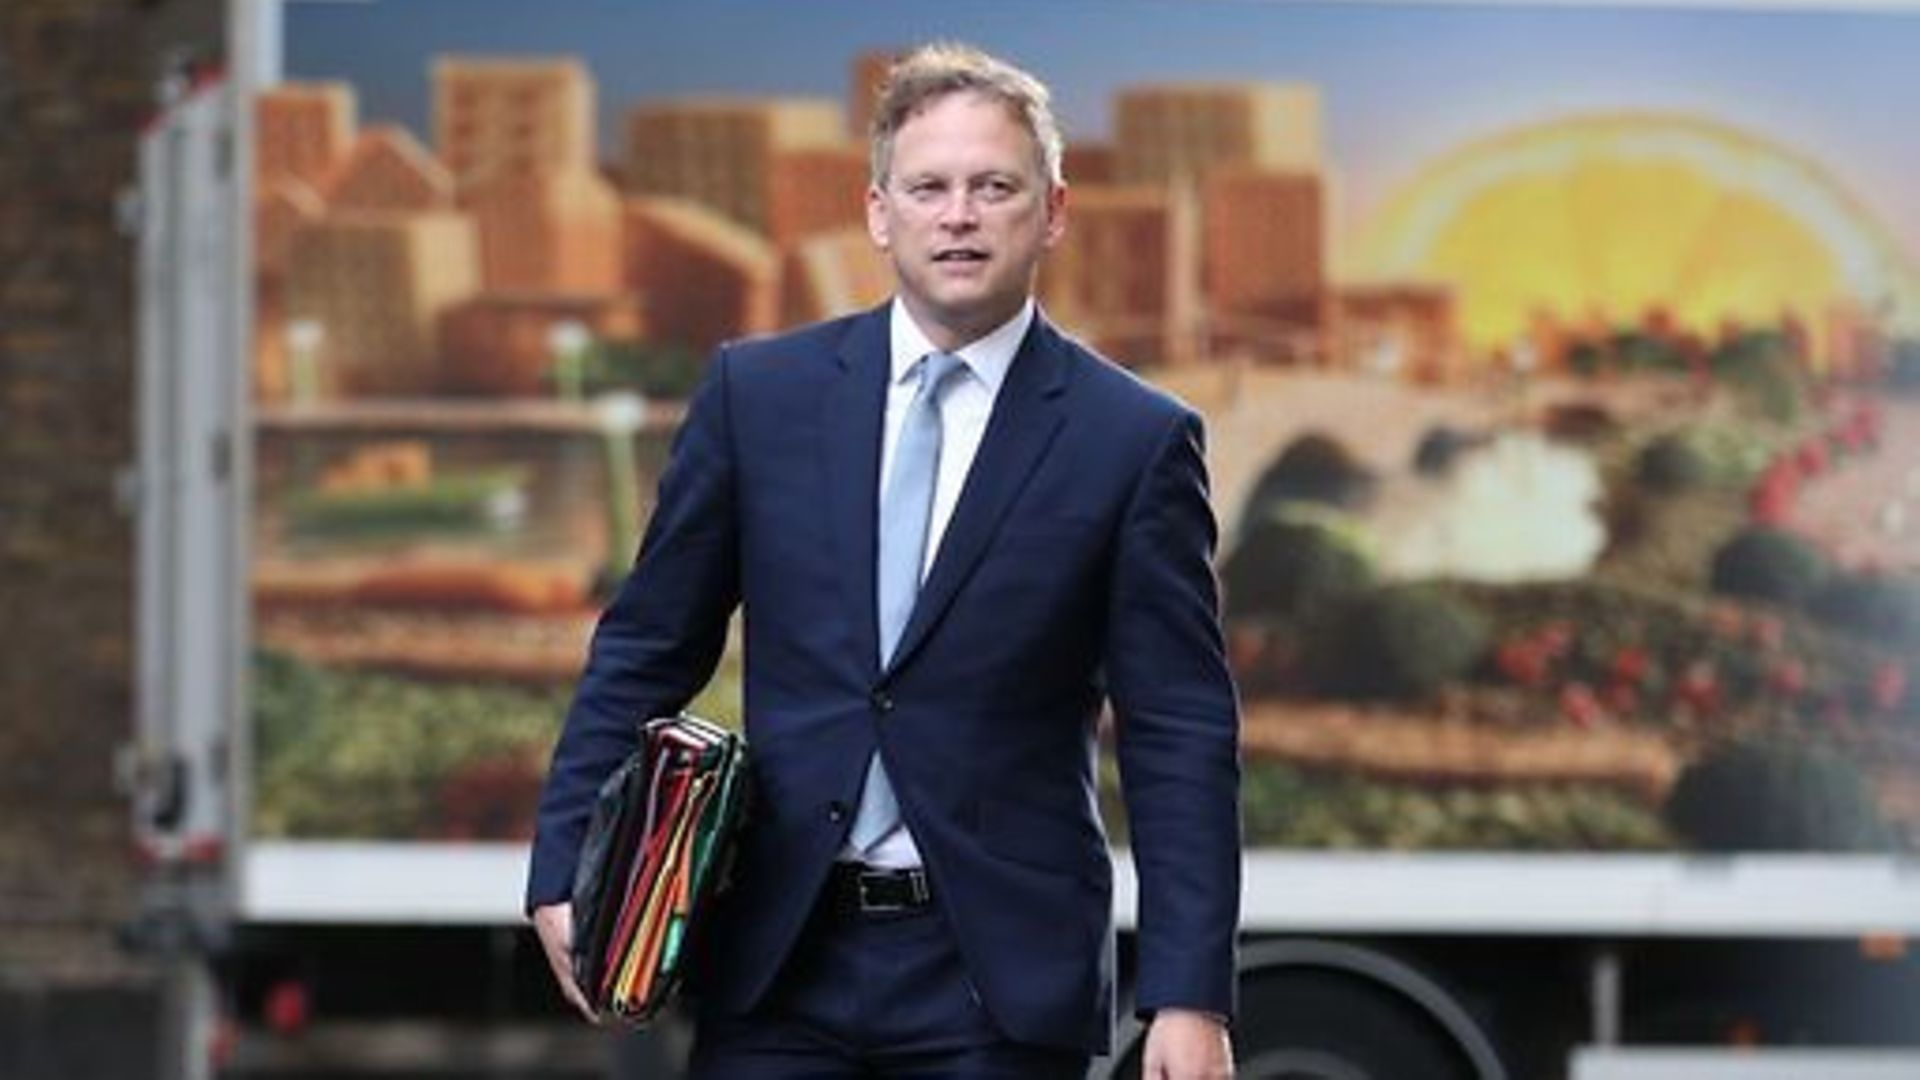 Transport secretary Grant Shapps in Downing Street - Credit: PA